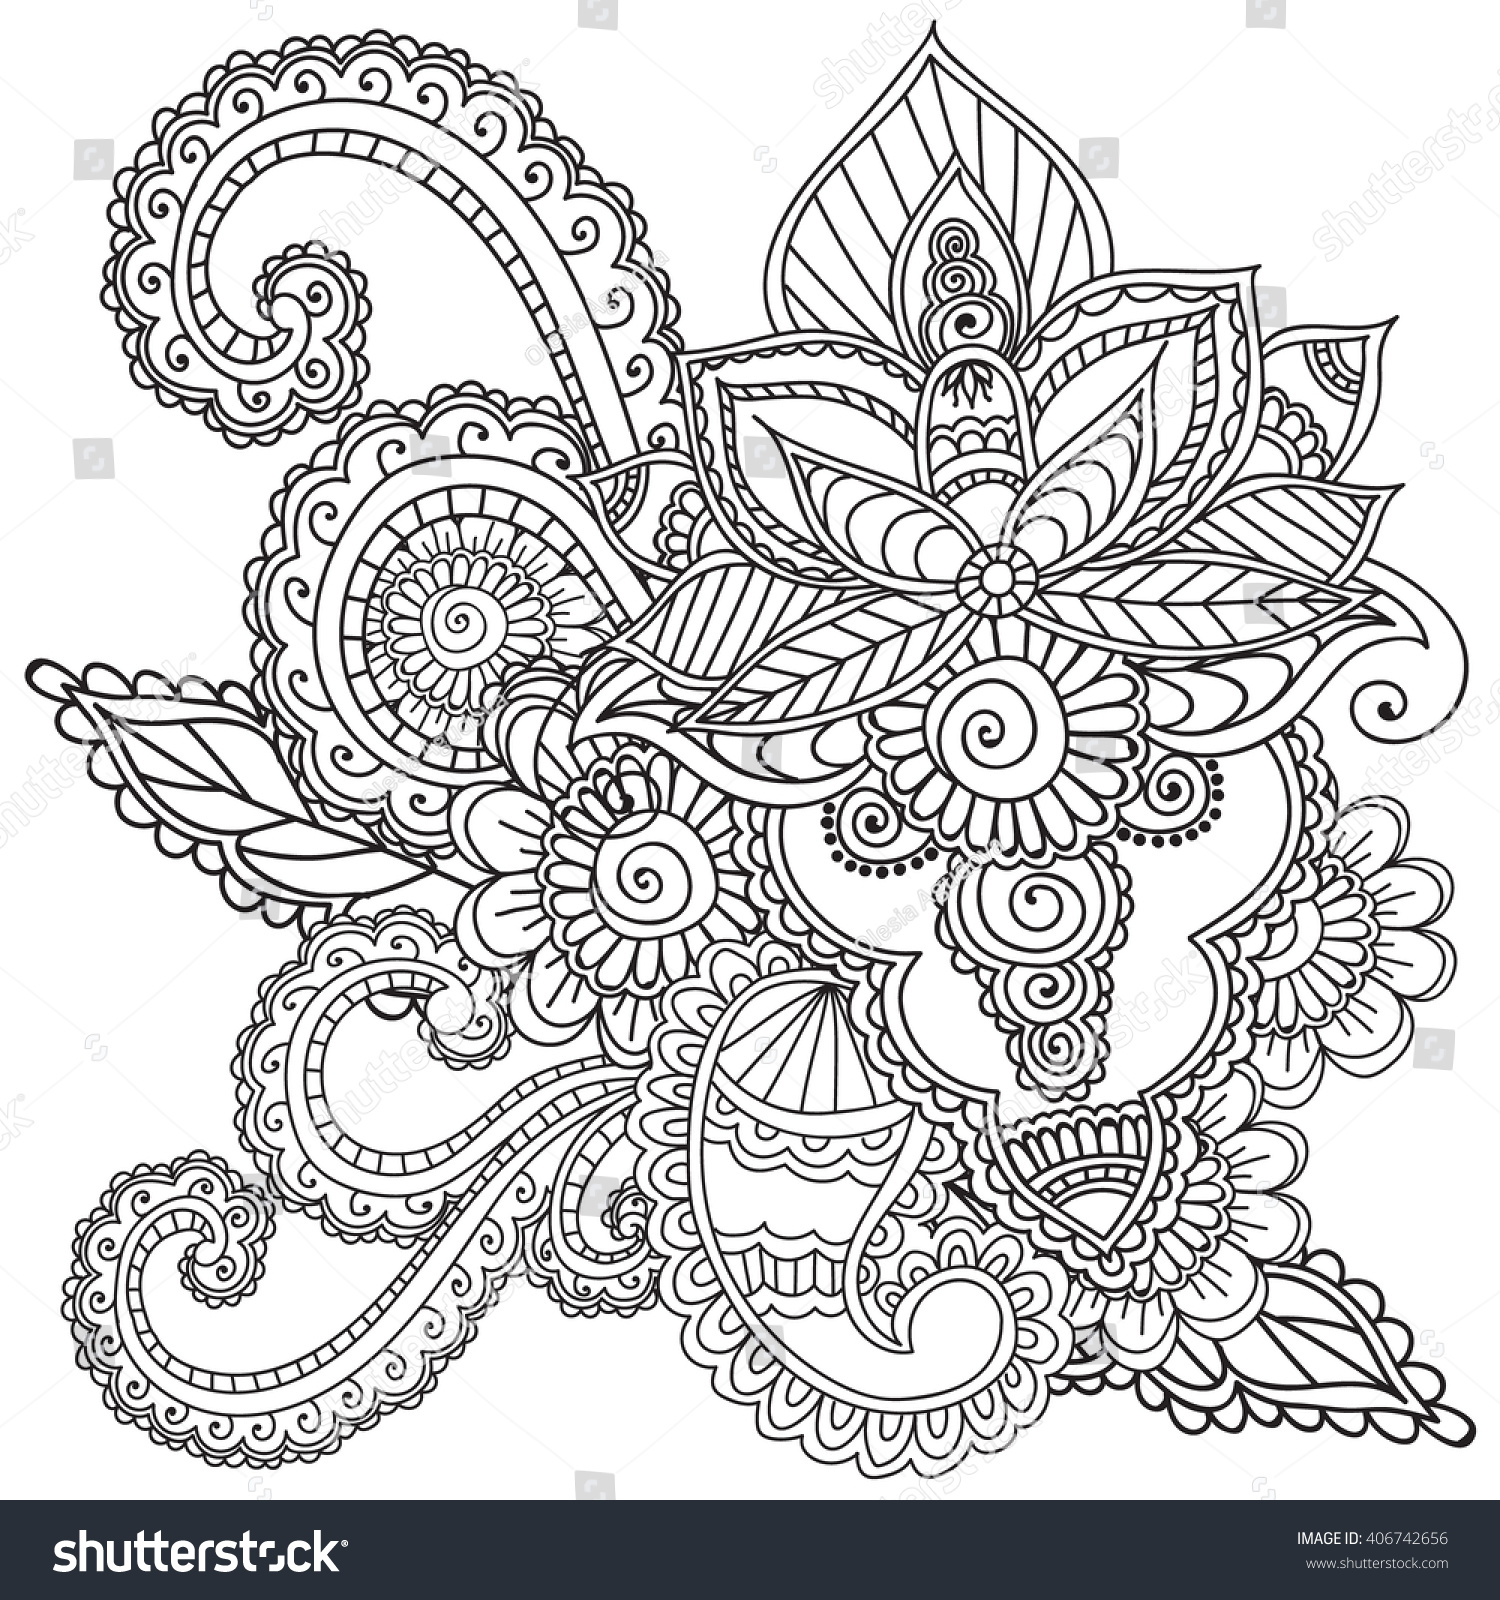 coloring pages adults henna mehndi doodles stock vector 406742656